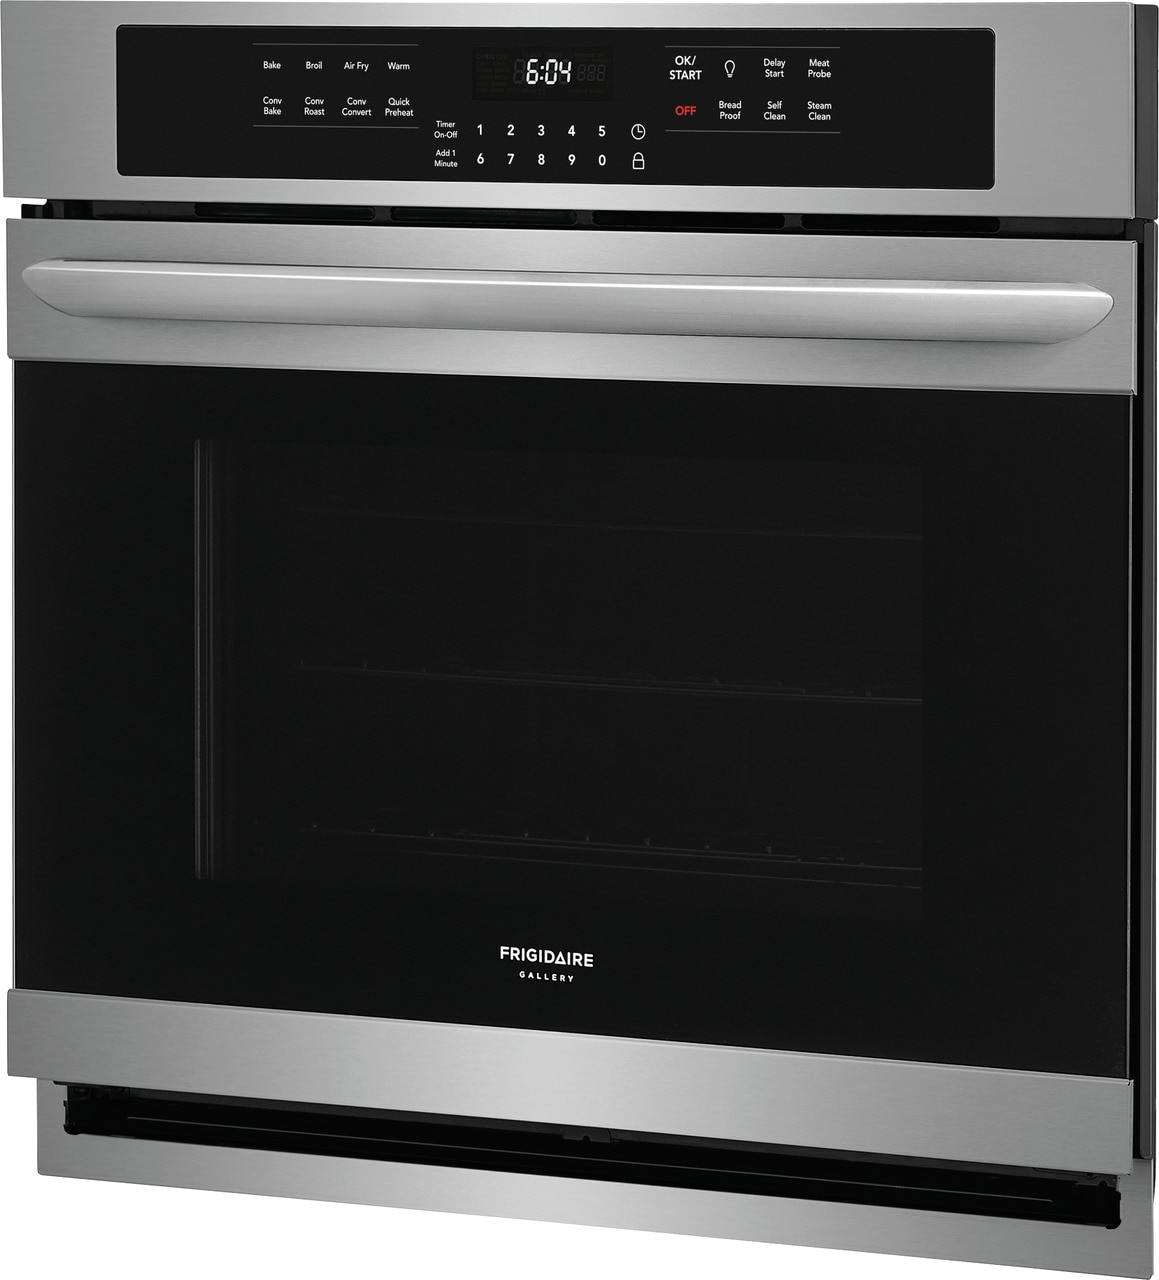 "Model: FGEW3069UF | Frigidaire Gallery 30"" Single Electric Wall Oven with Air Fry"